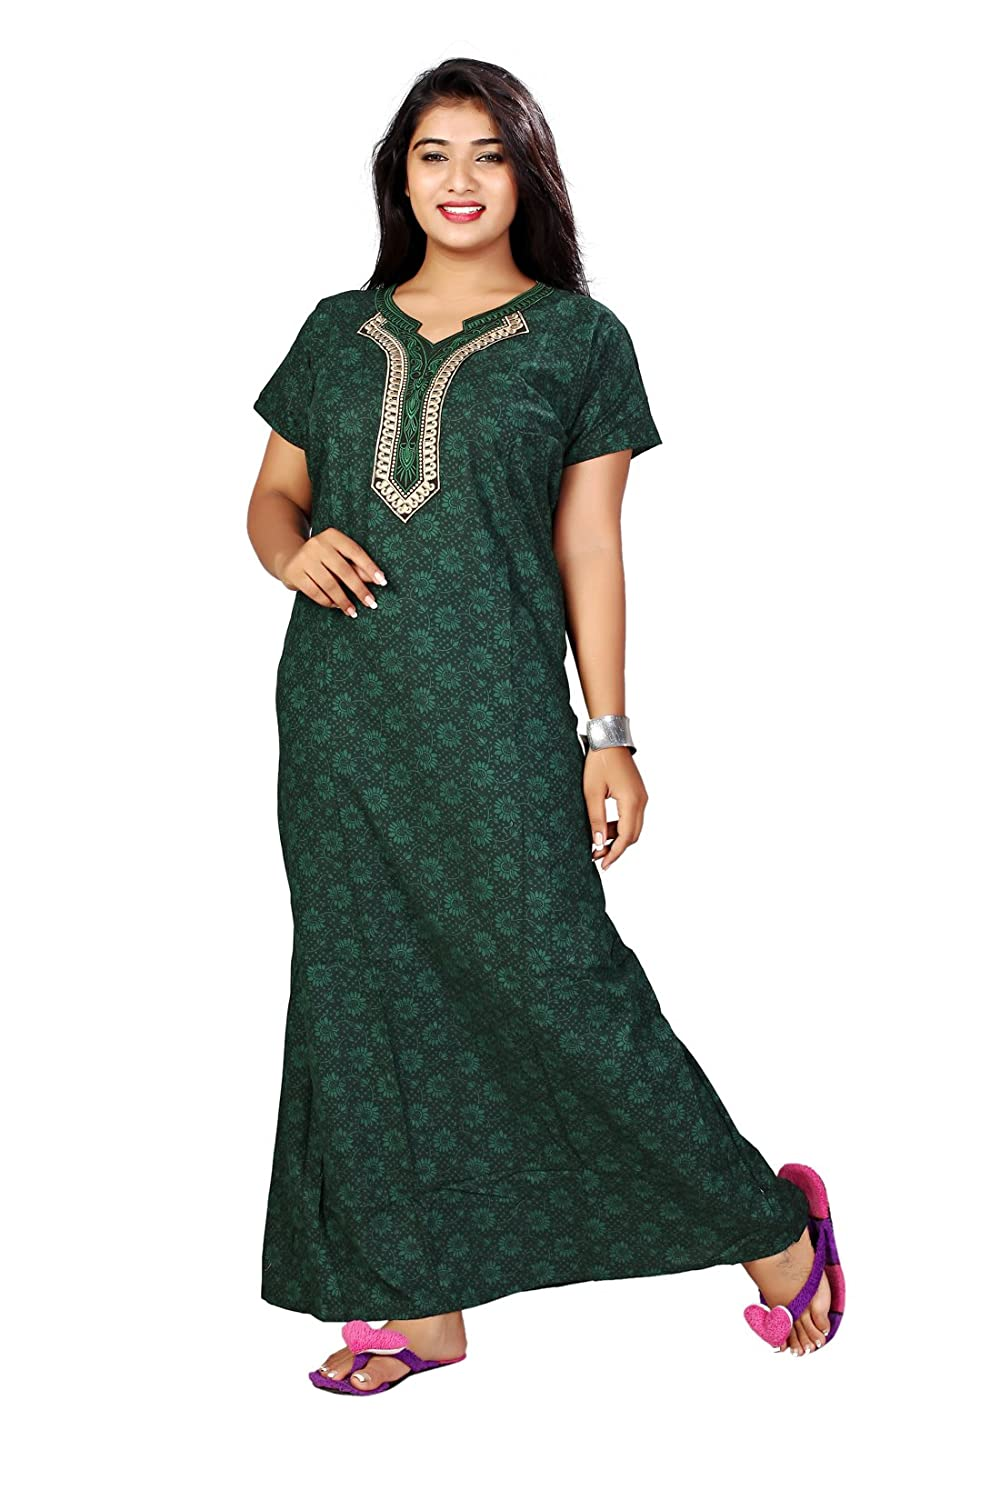 official supplier new items superior quality Bailey Women's Cotton Nighty, Free Size (Dark Green ...